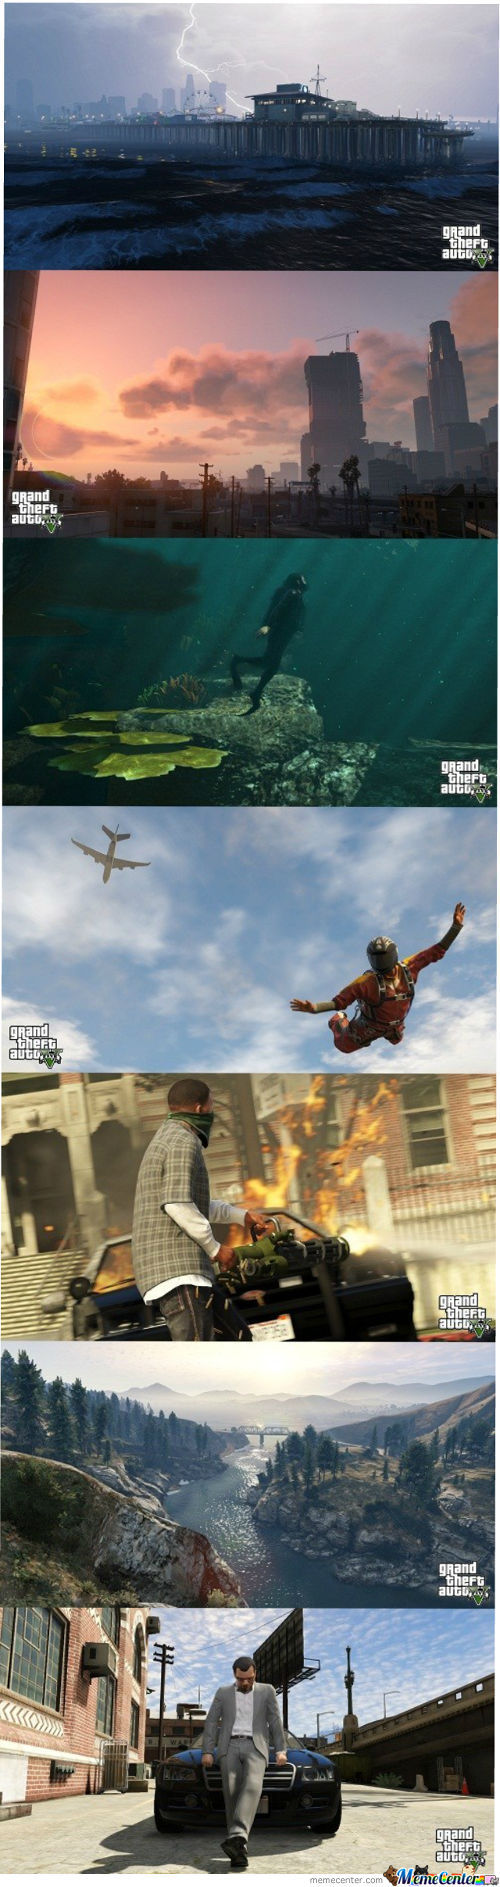 Screen Shots From Gta V